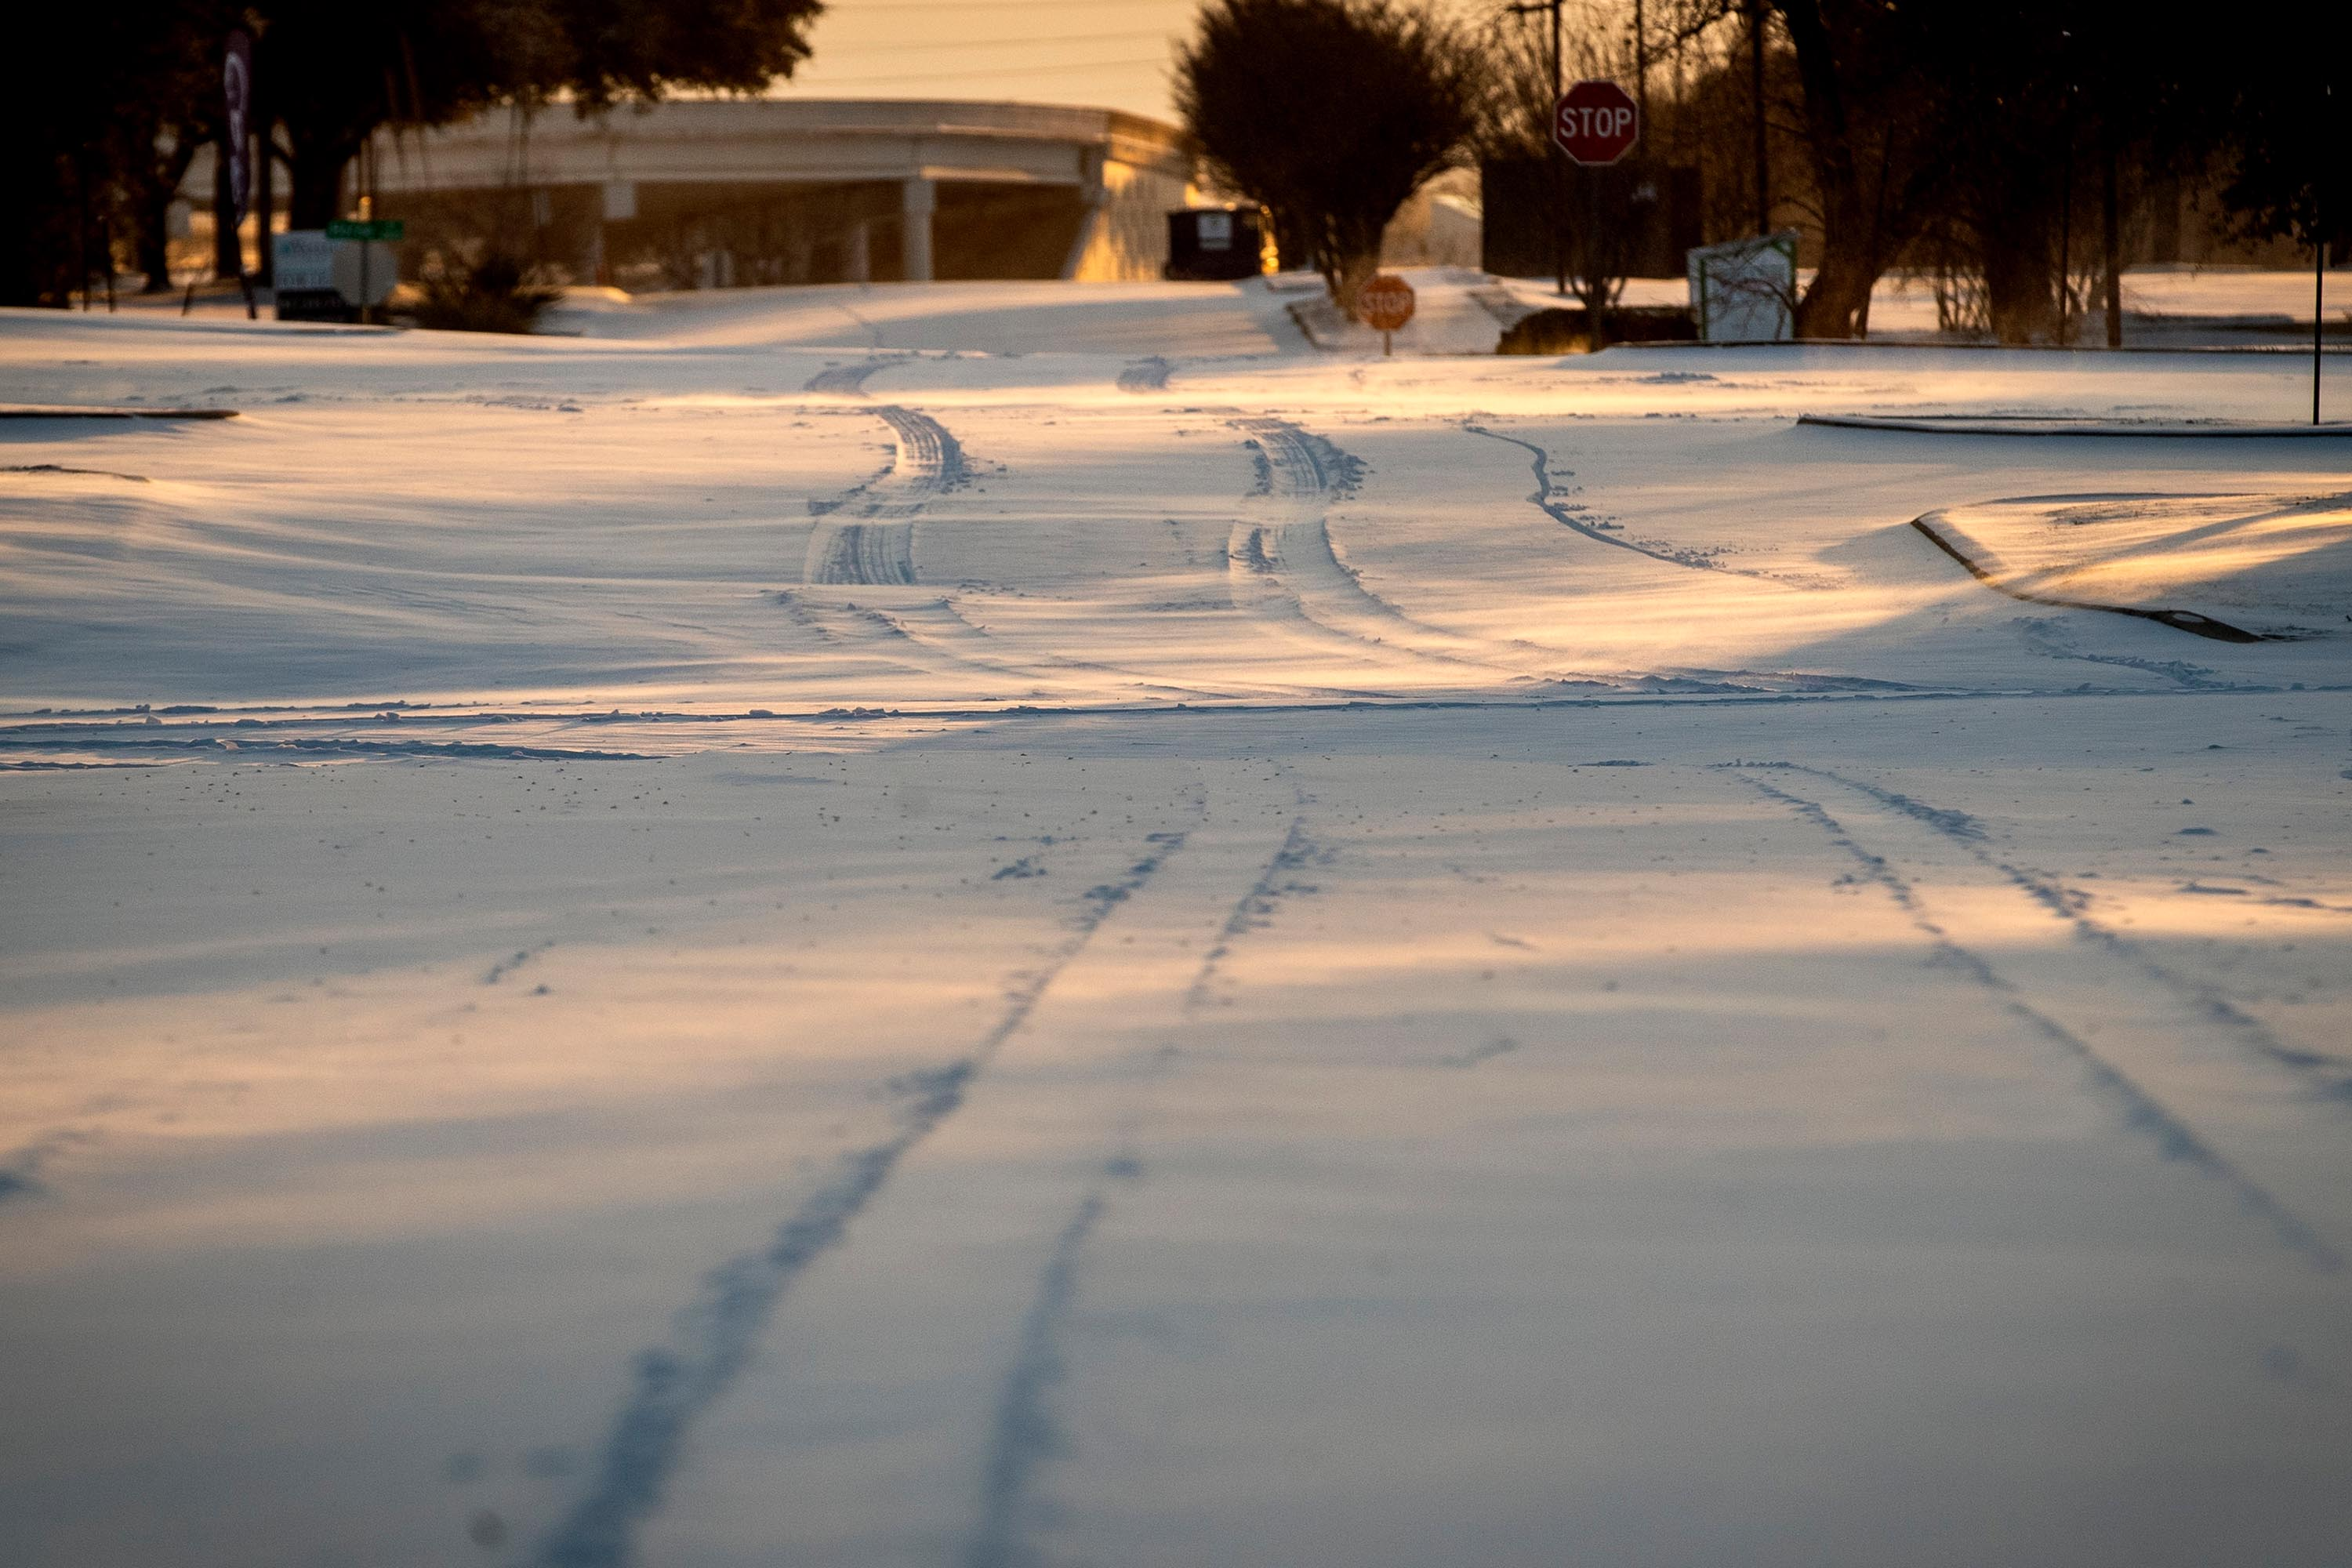 Snow covers the streets after a storm Monday, February 15, in Fort Worth, Texas.